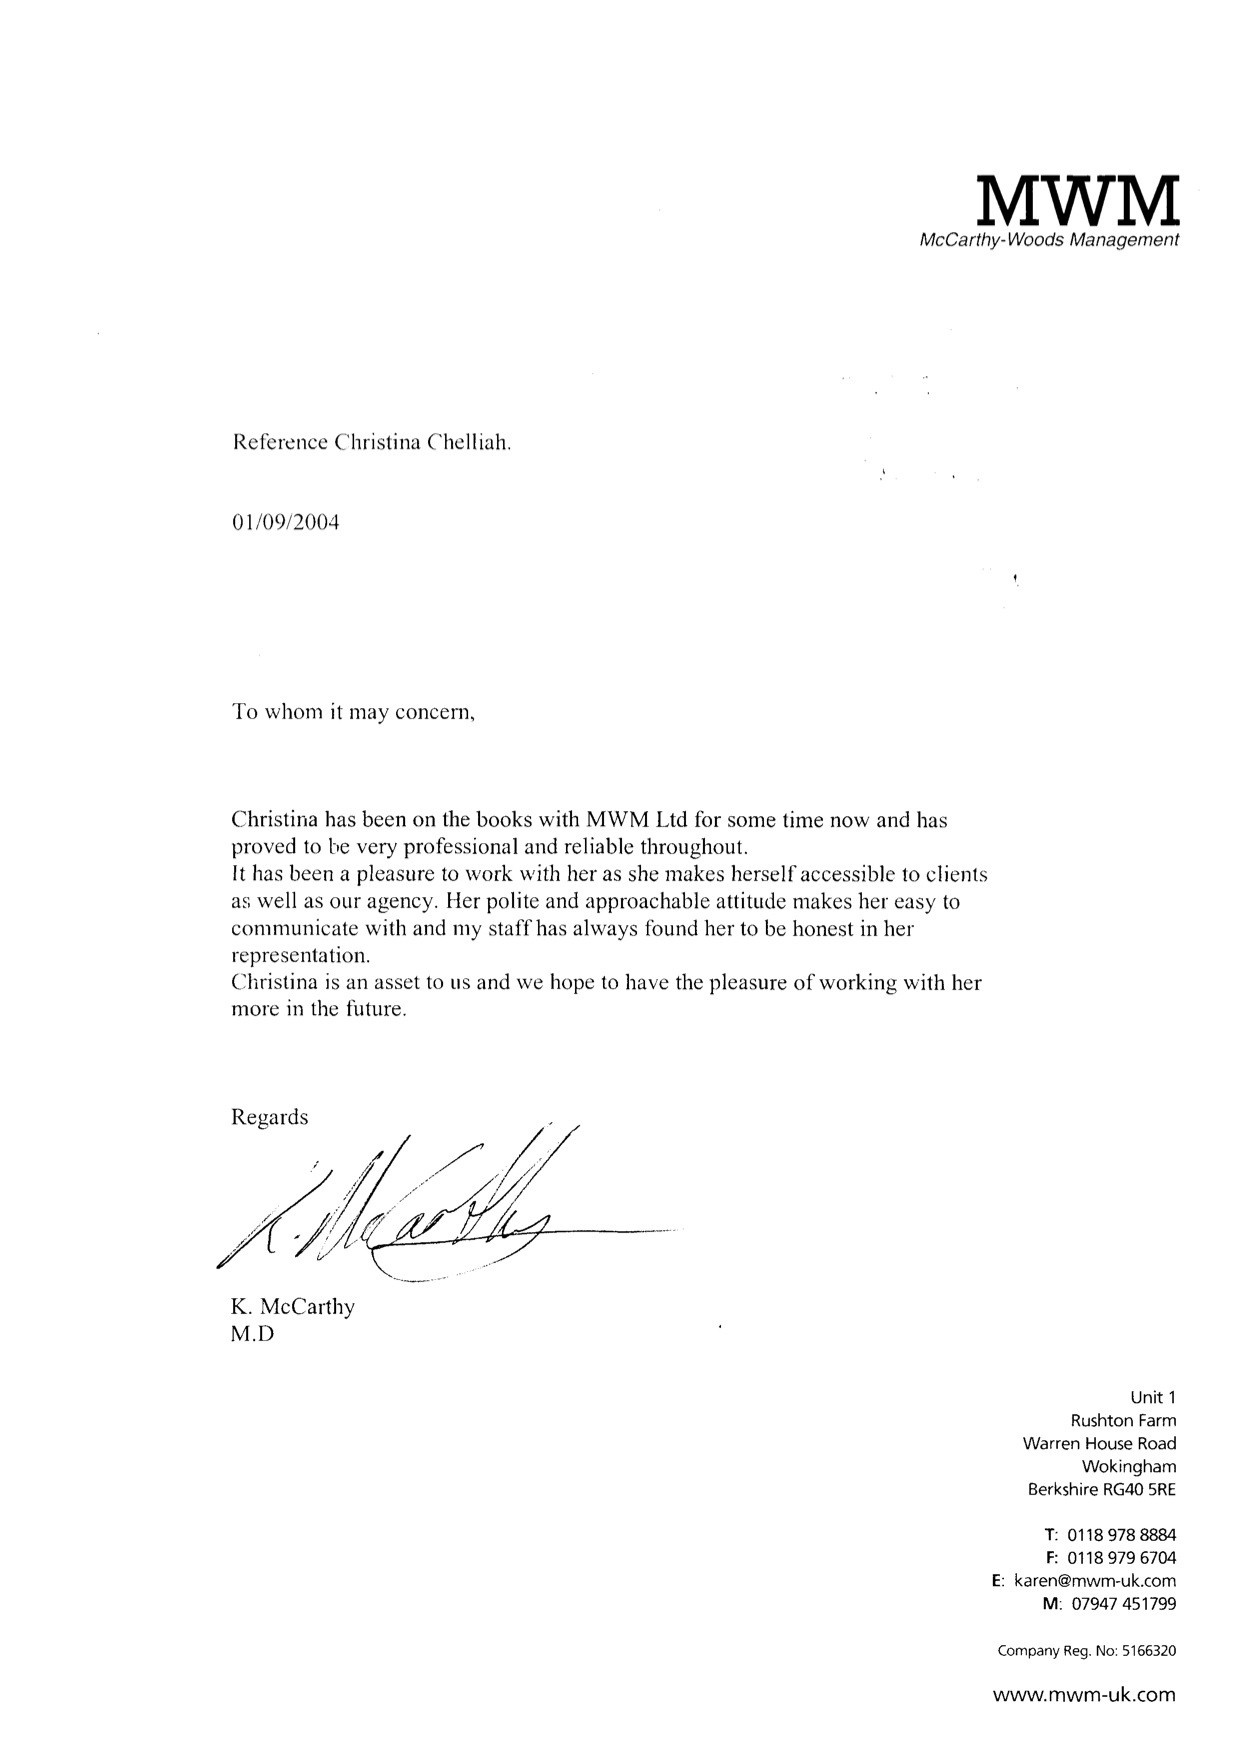 2004 - Modeling - MWM Mc Carthy Woods Management - Reference Letter.jpg